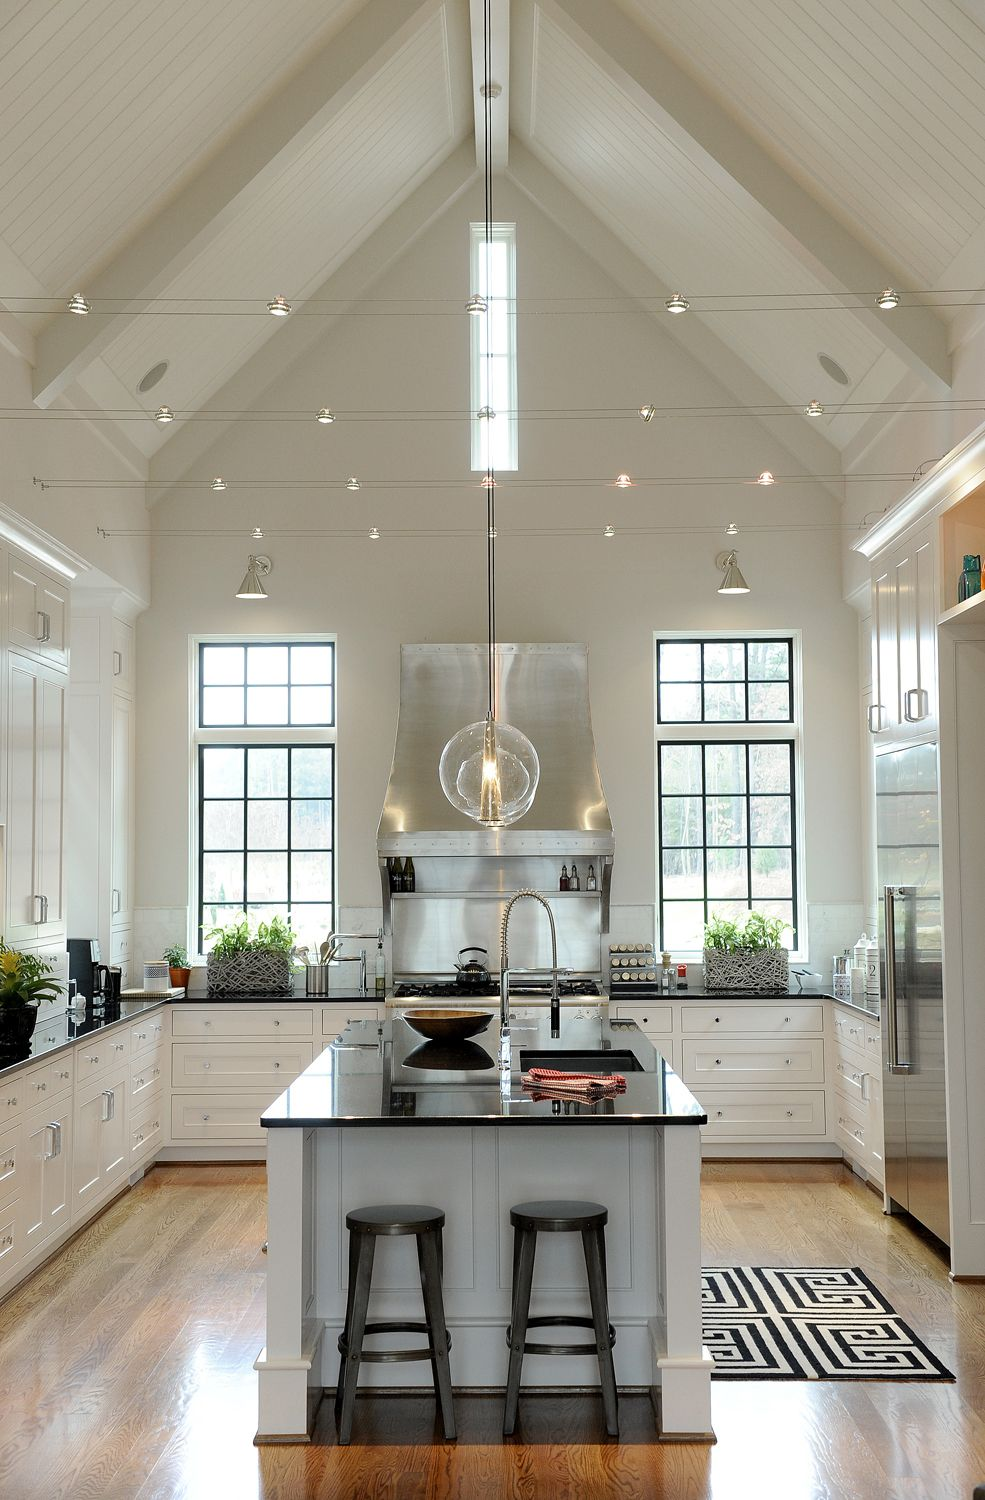 Vaulted Ceilings History Pros Cons And Inspirational - Kitchen lights for slanted ceilings